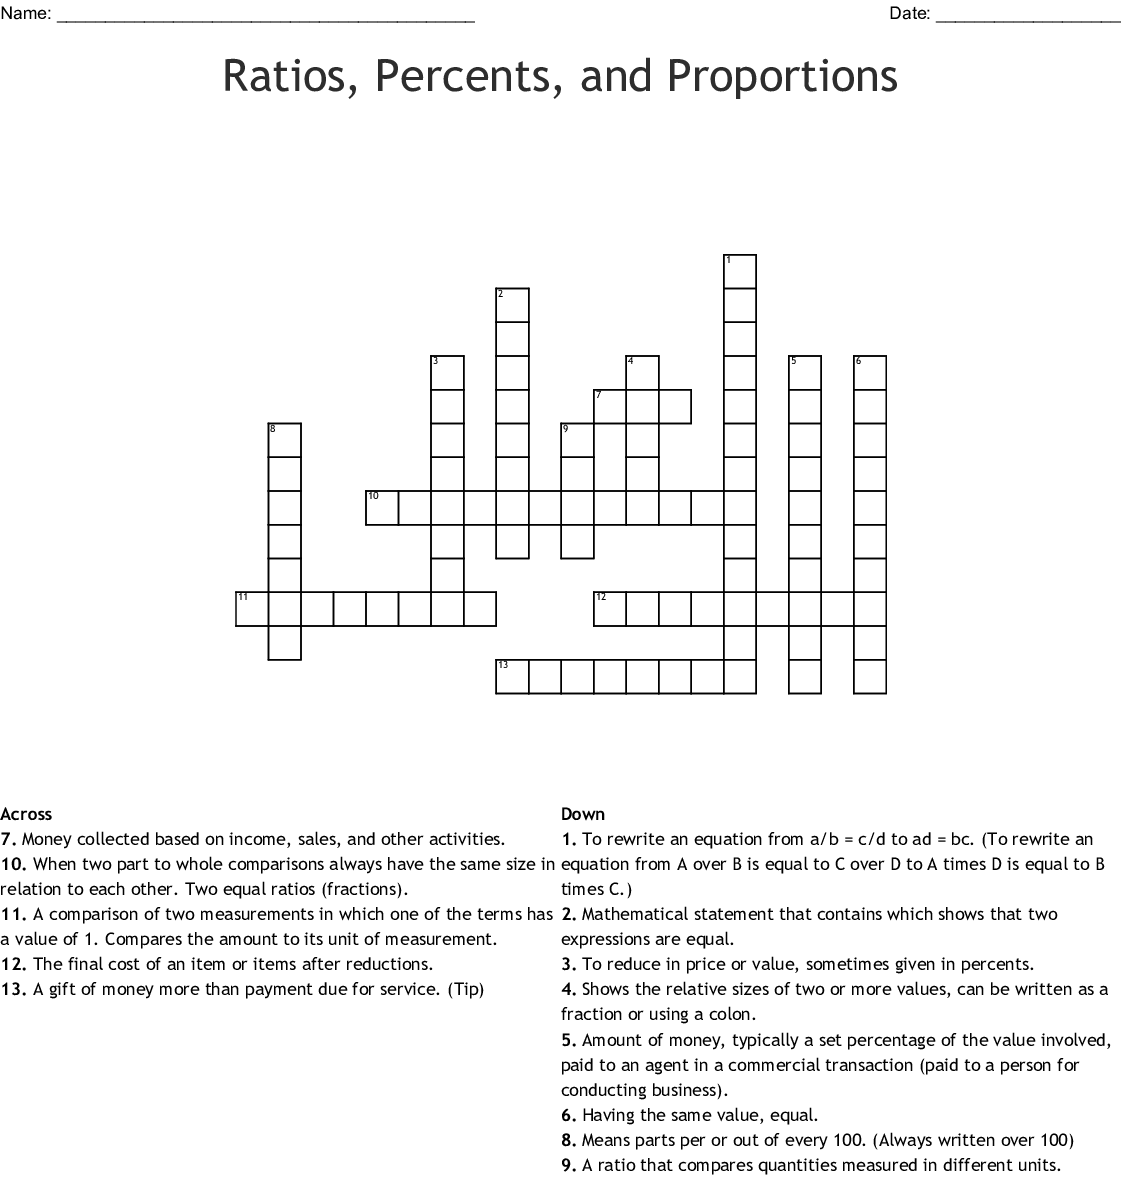 Ratios Percents And Proportions Crossword